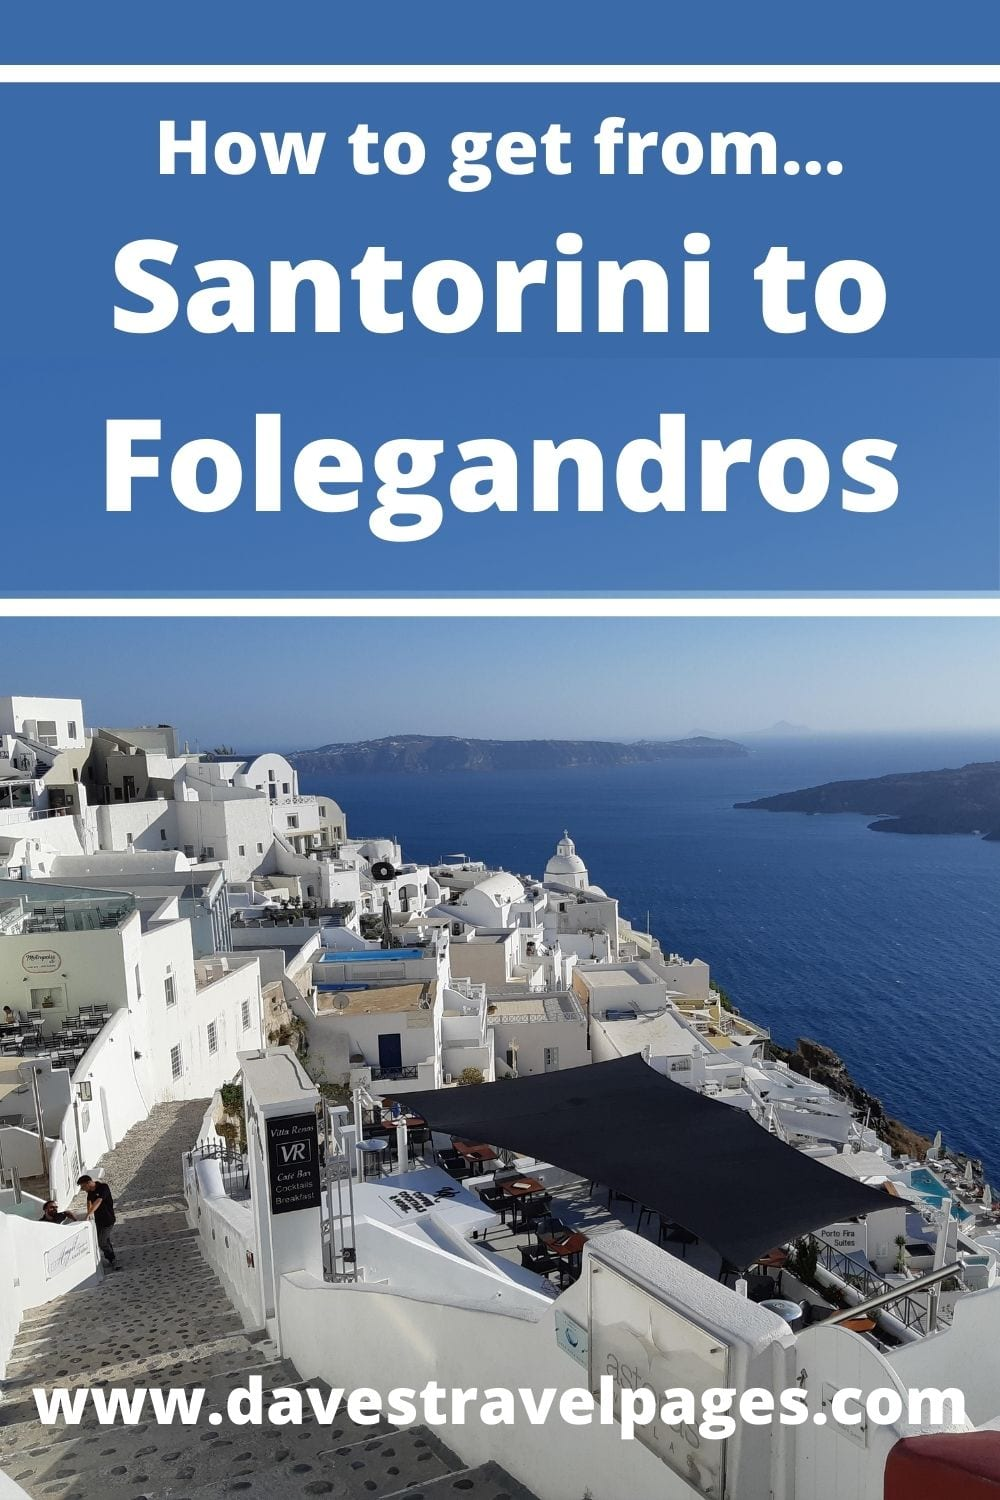 Santorini to Folegandros by Ferry